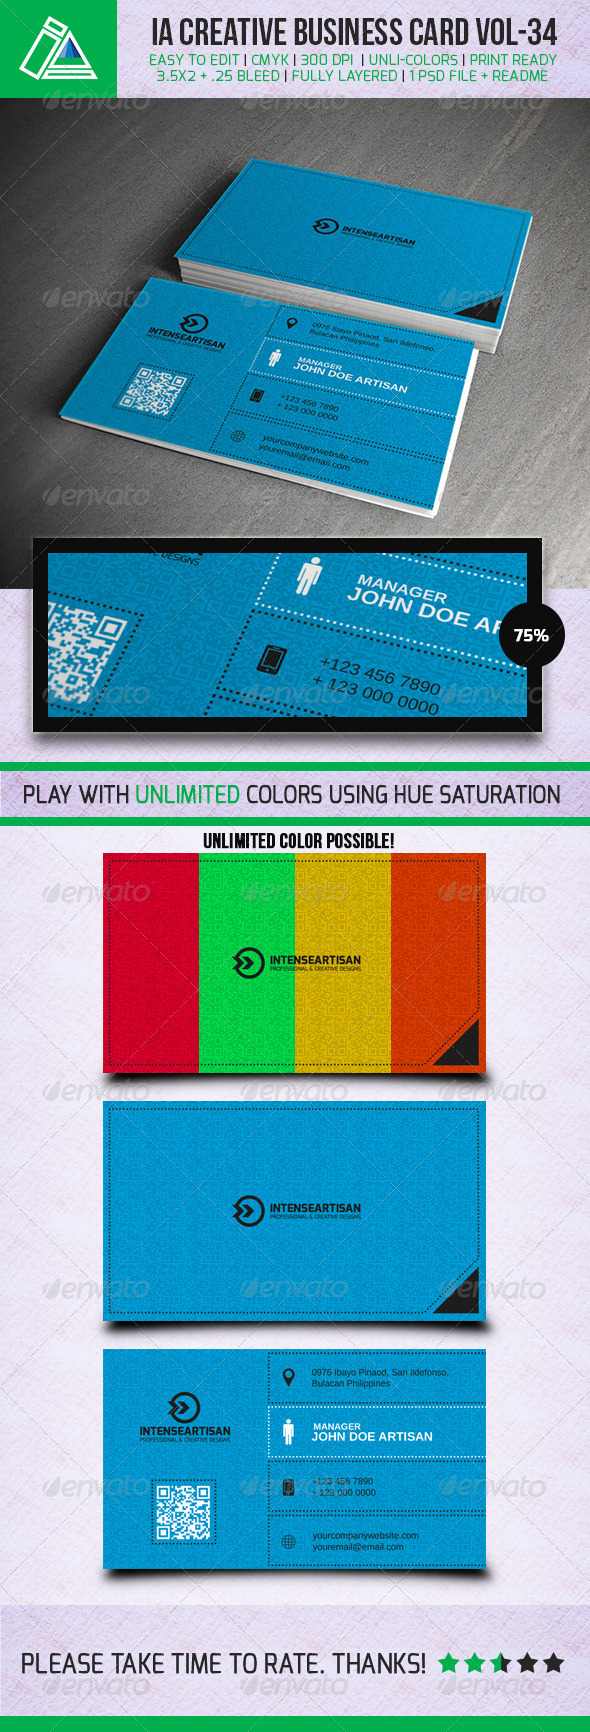 IntenseArtisan Business Card Vol 34 - Creative Business Cards